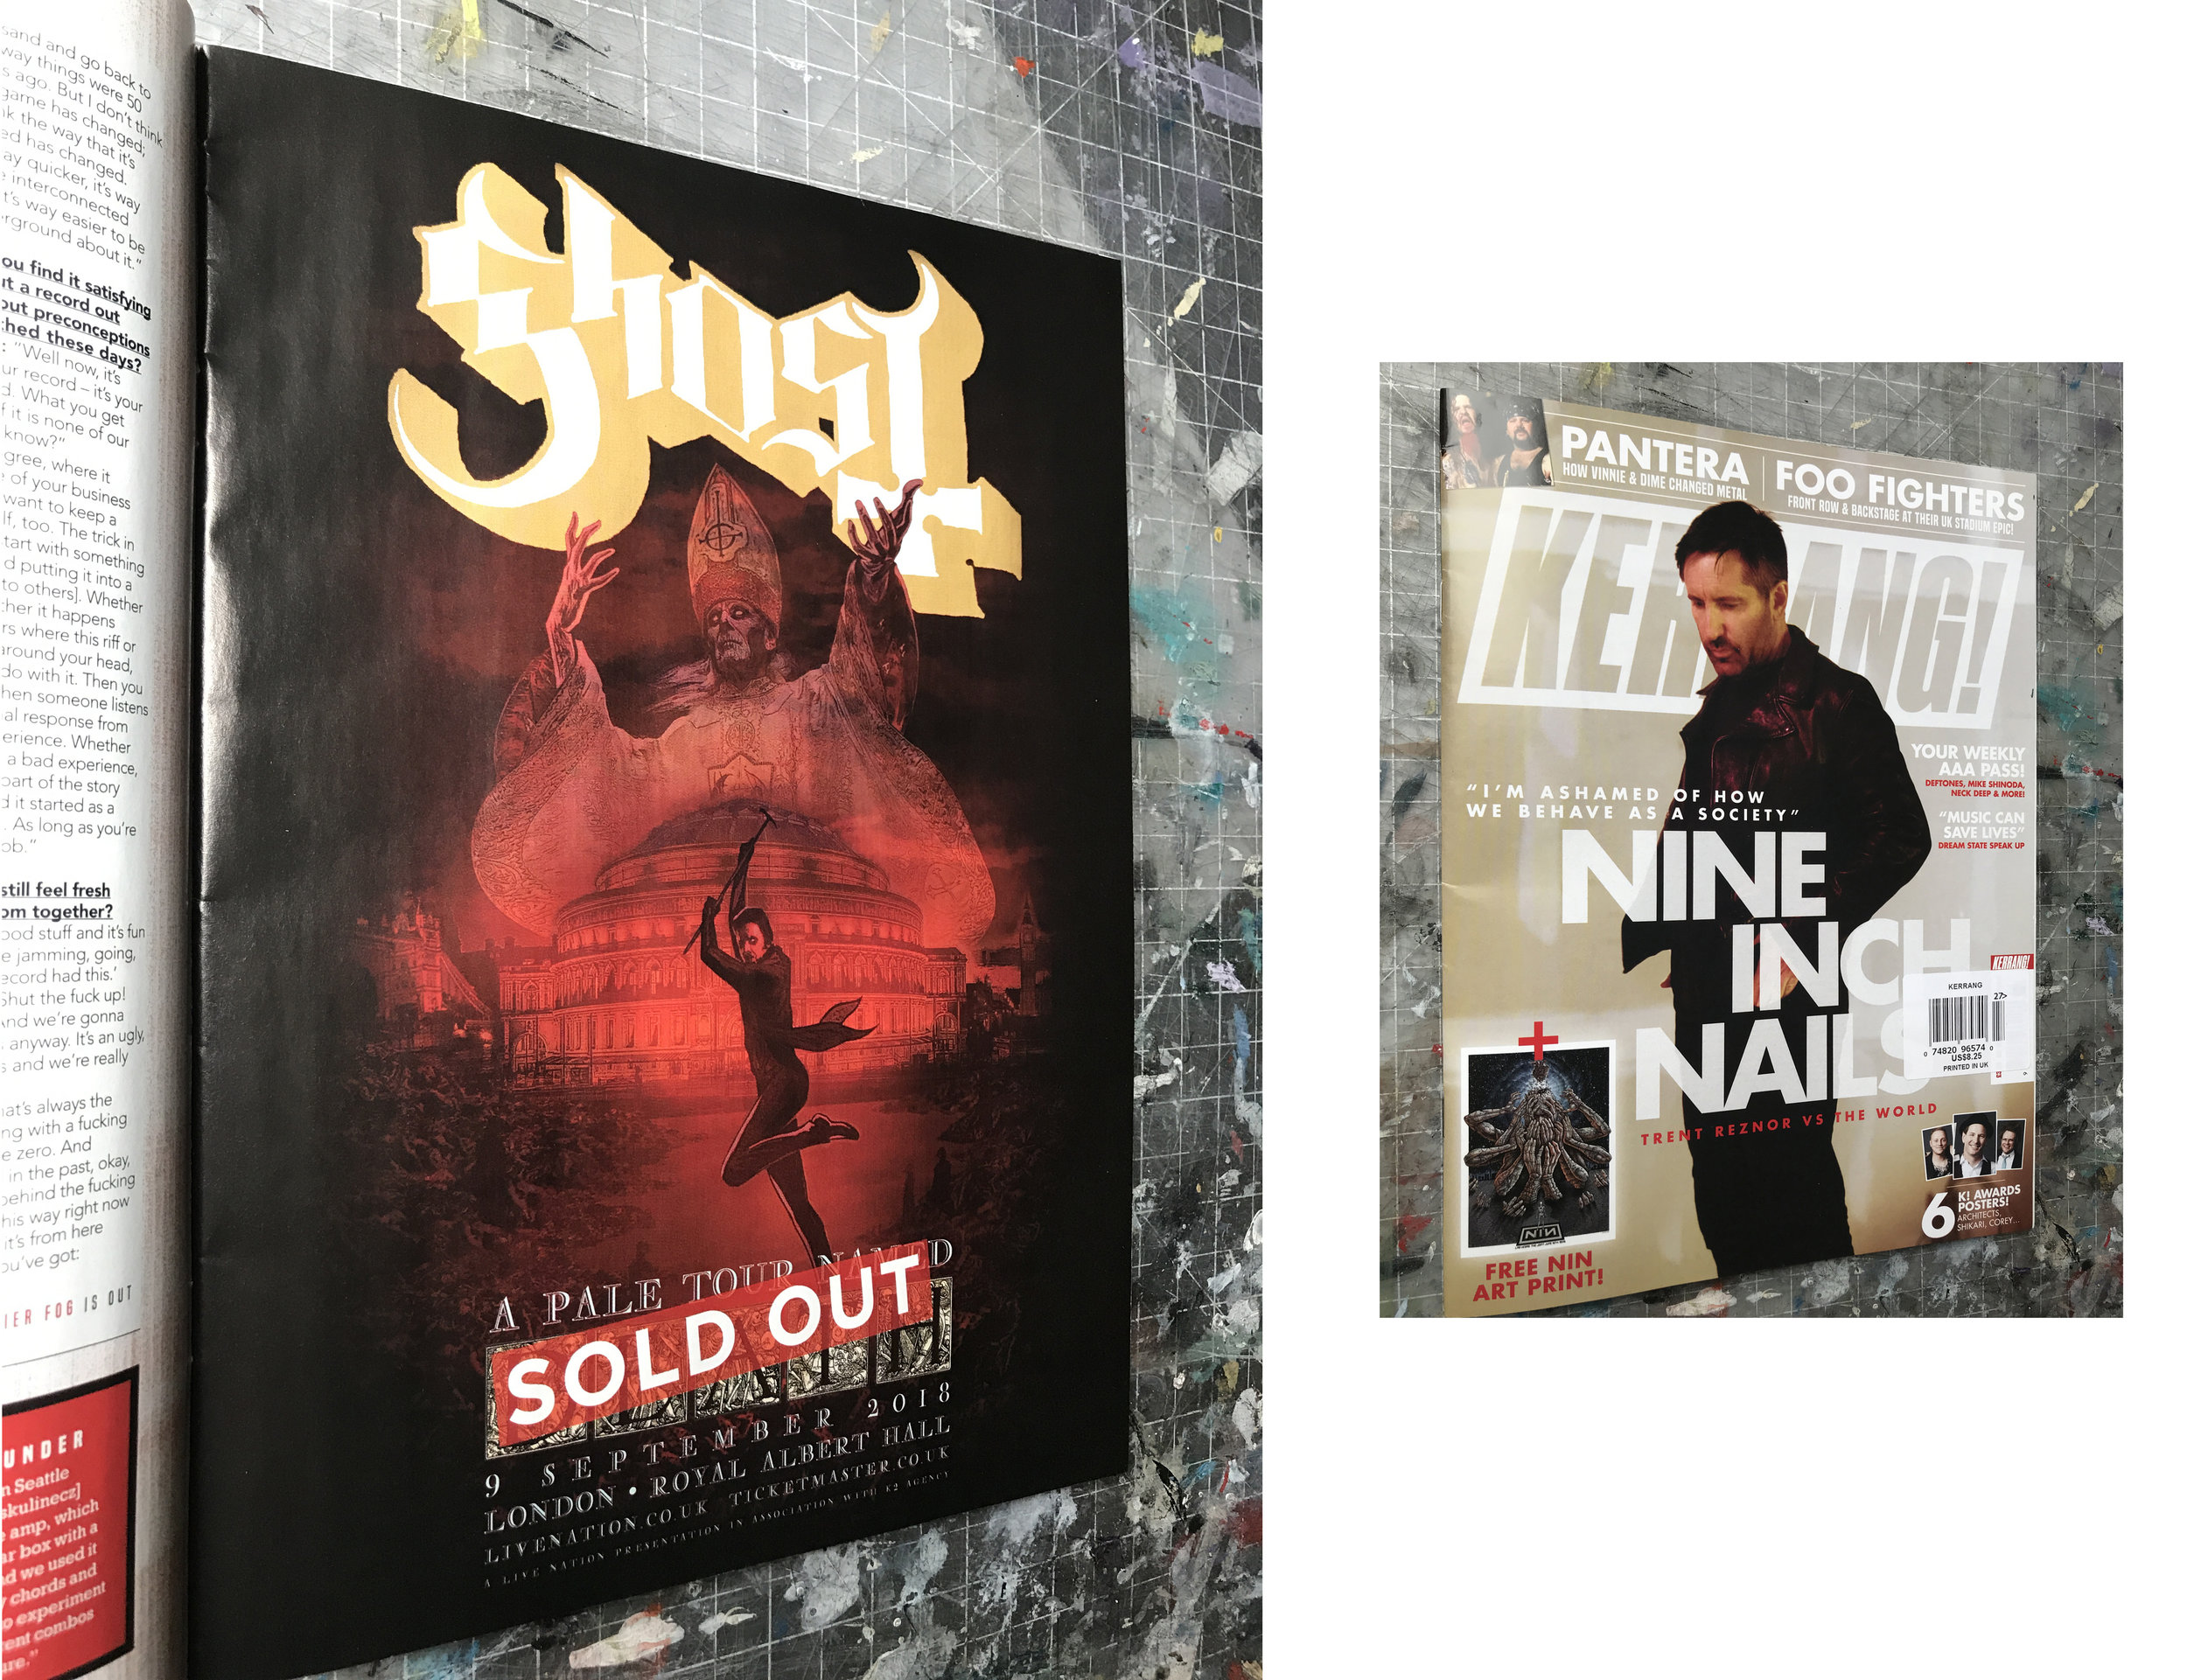 GHOST | Royal Albert Hall | September 9, 2018   A Pale Tour Named Death Official advert   July 4, 2018 KERRANG! magazine #1729